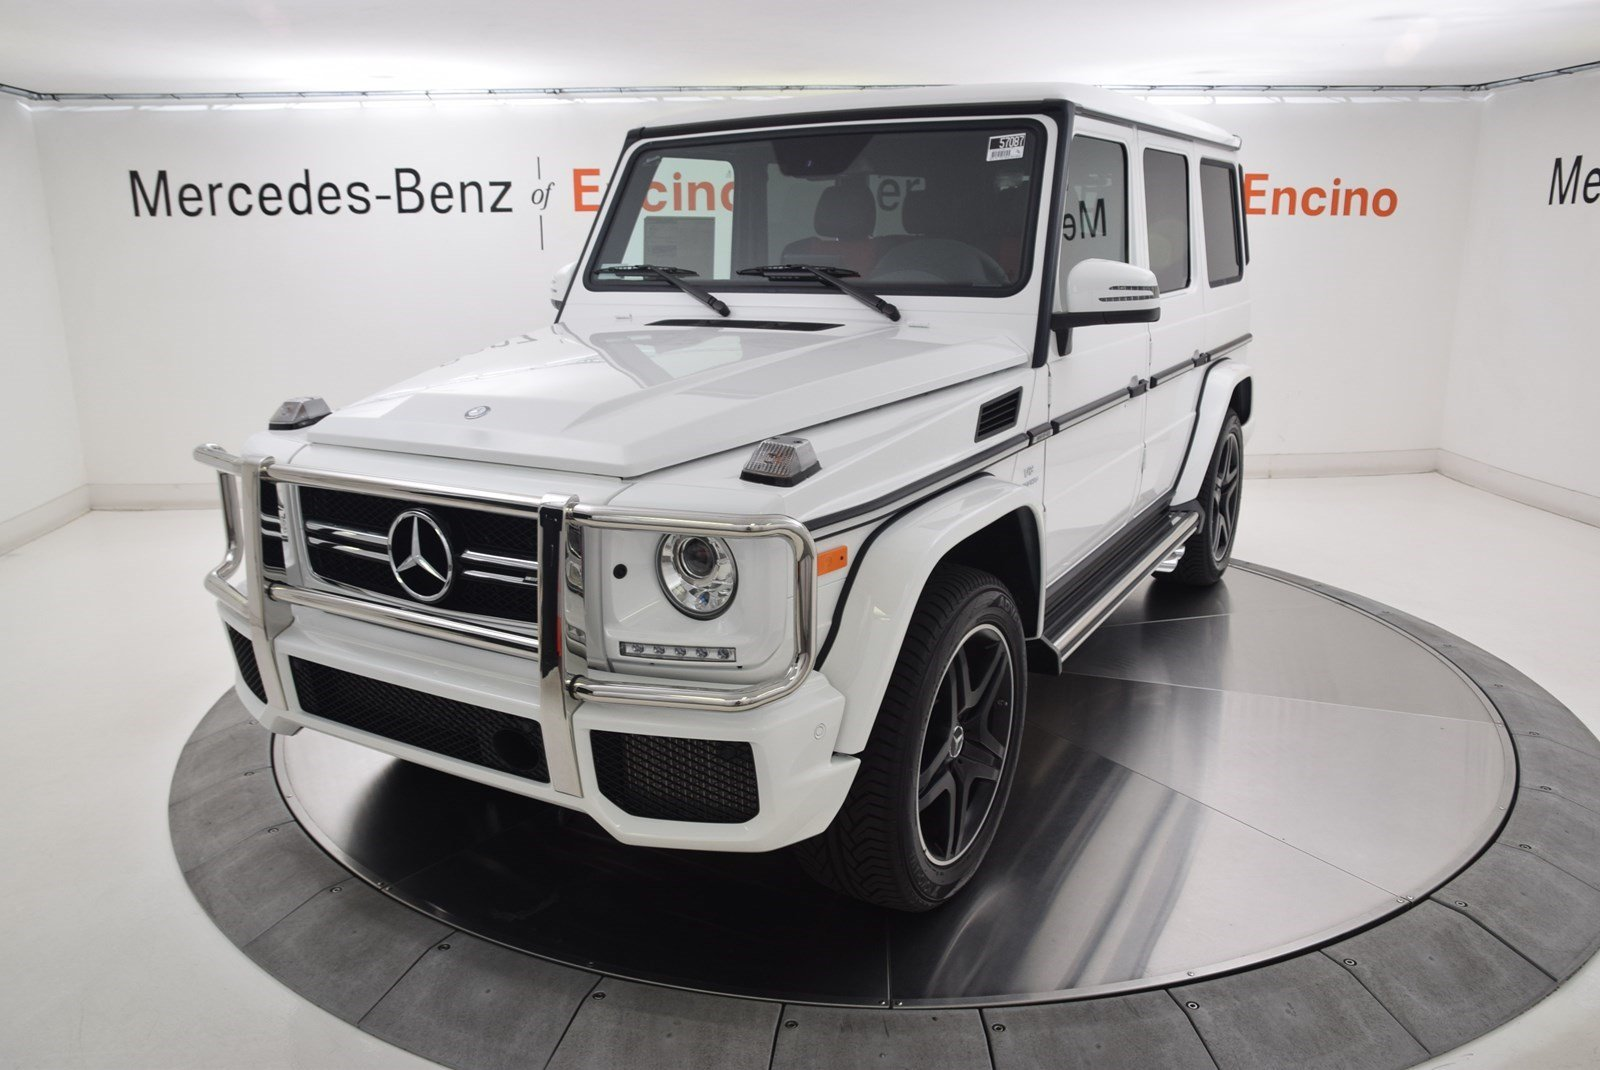 New 2017 mercedes benz g class g 63 amg suv suv in encino for 2017 mercedes benz g class msrp